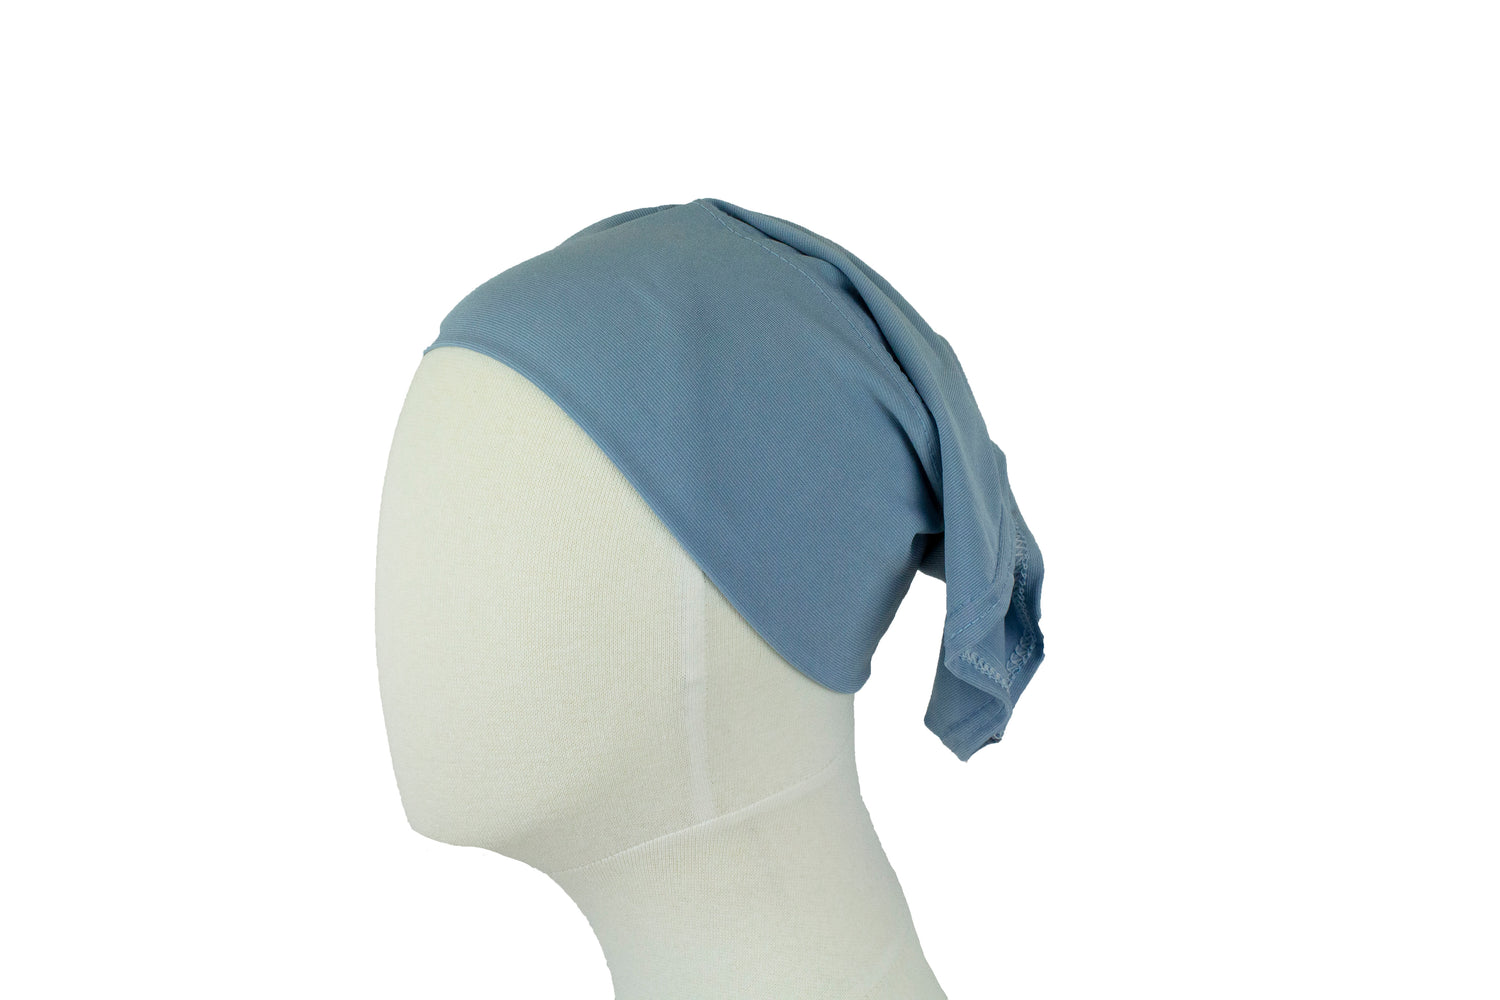 dusty blue undercap for hijab